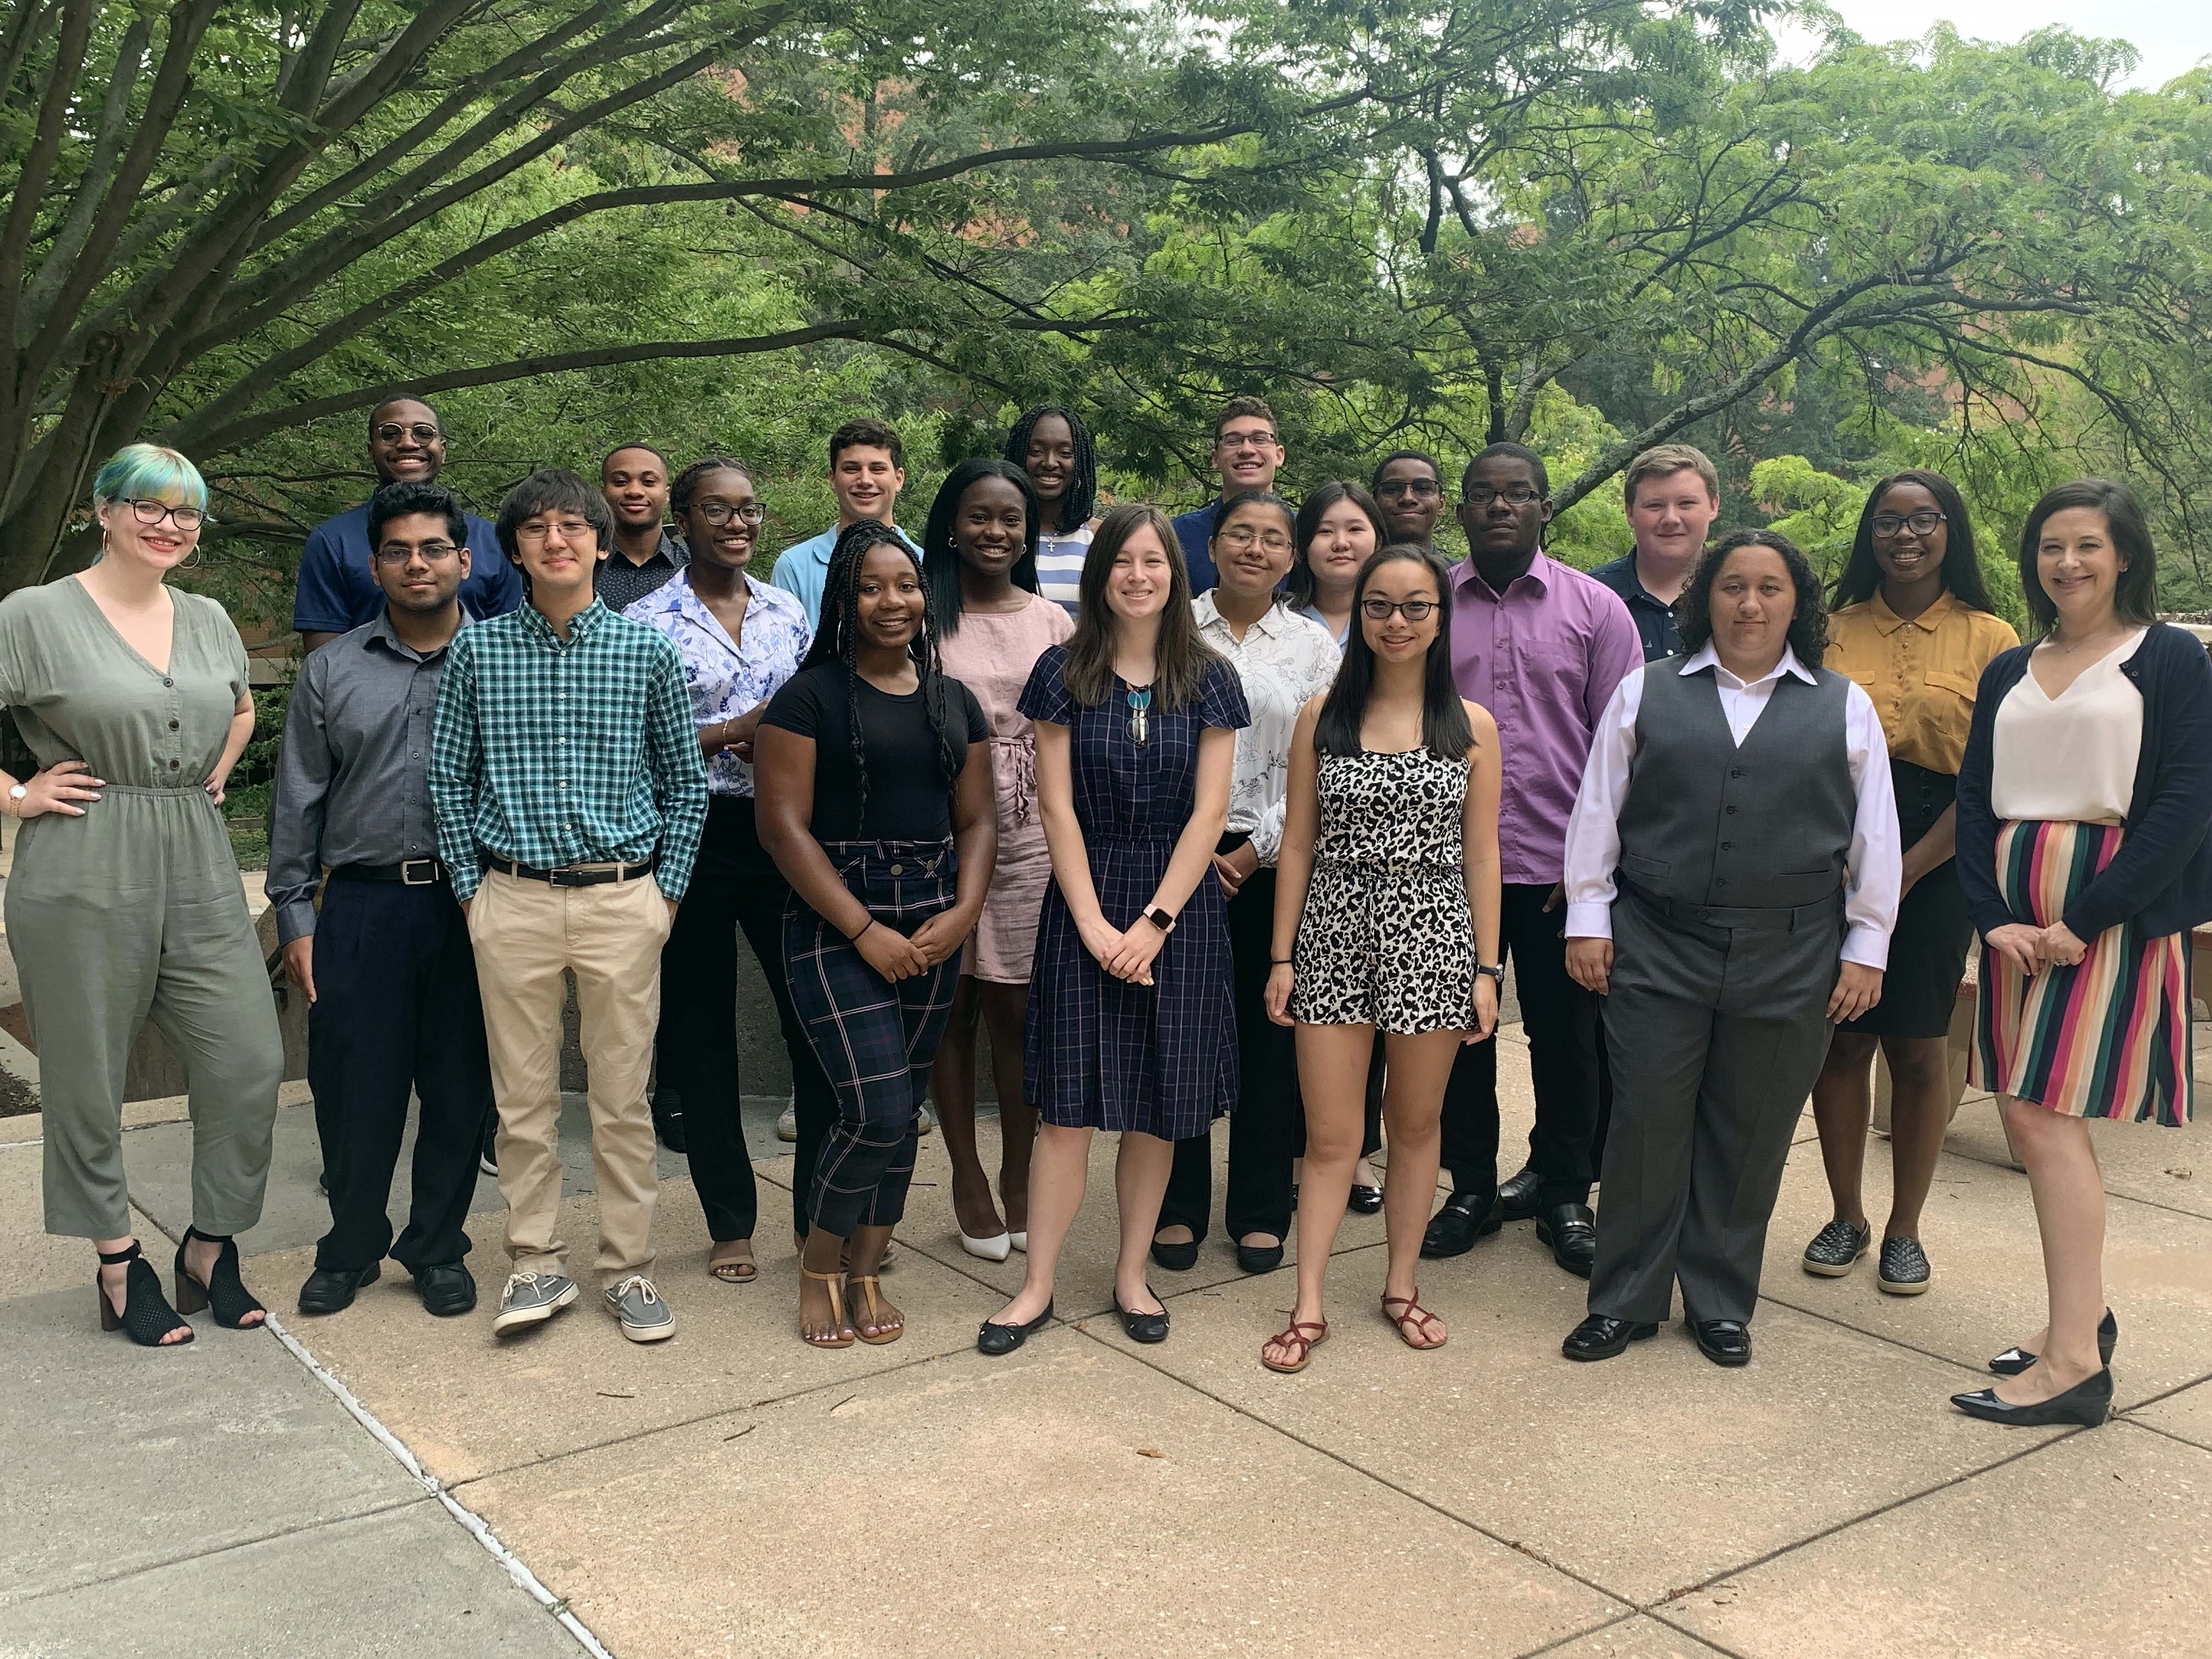 The newest UMBC BUILD Trainees stand with one of their mentors, Laura Ott, Ph.D.